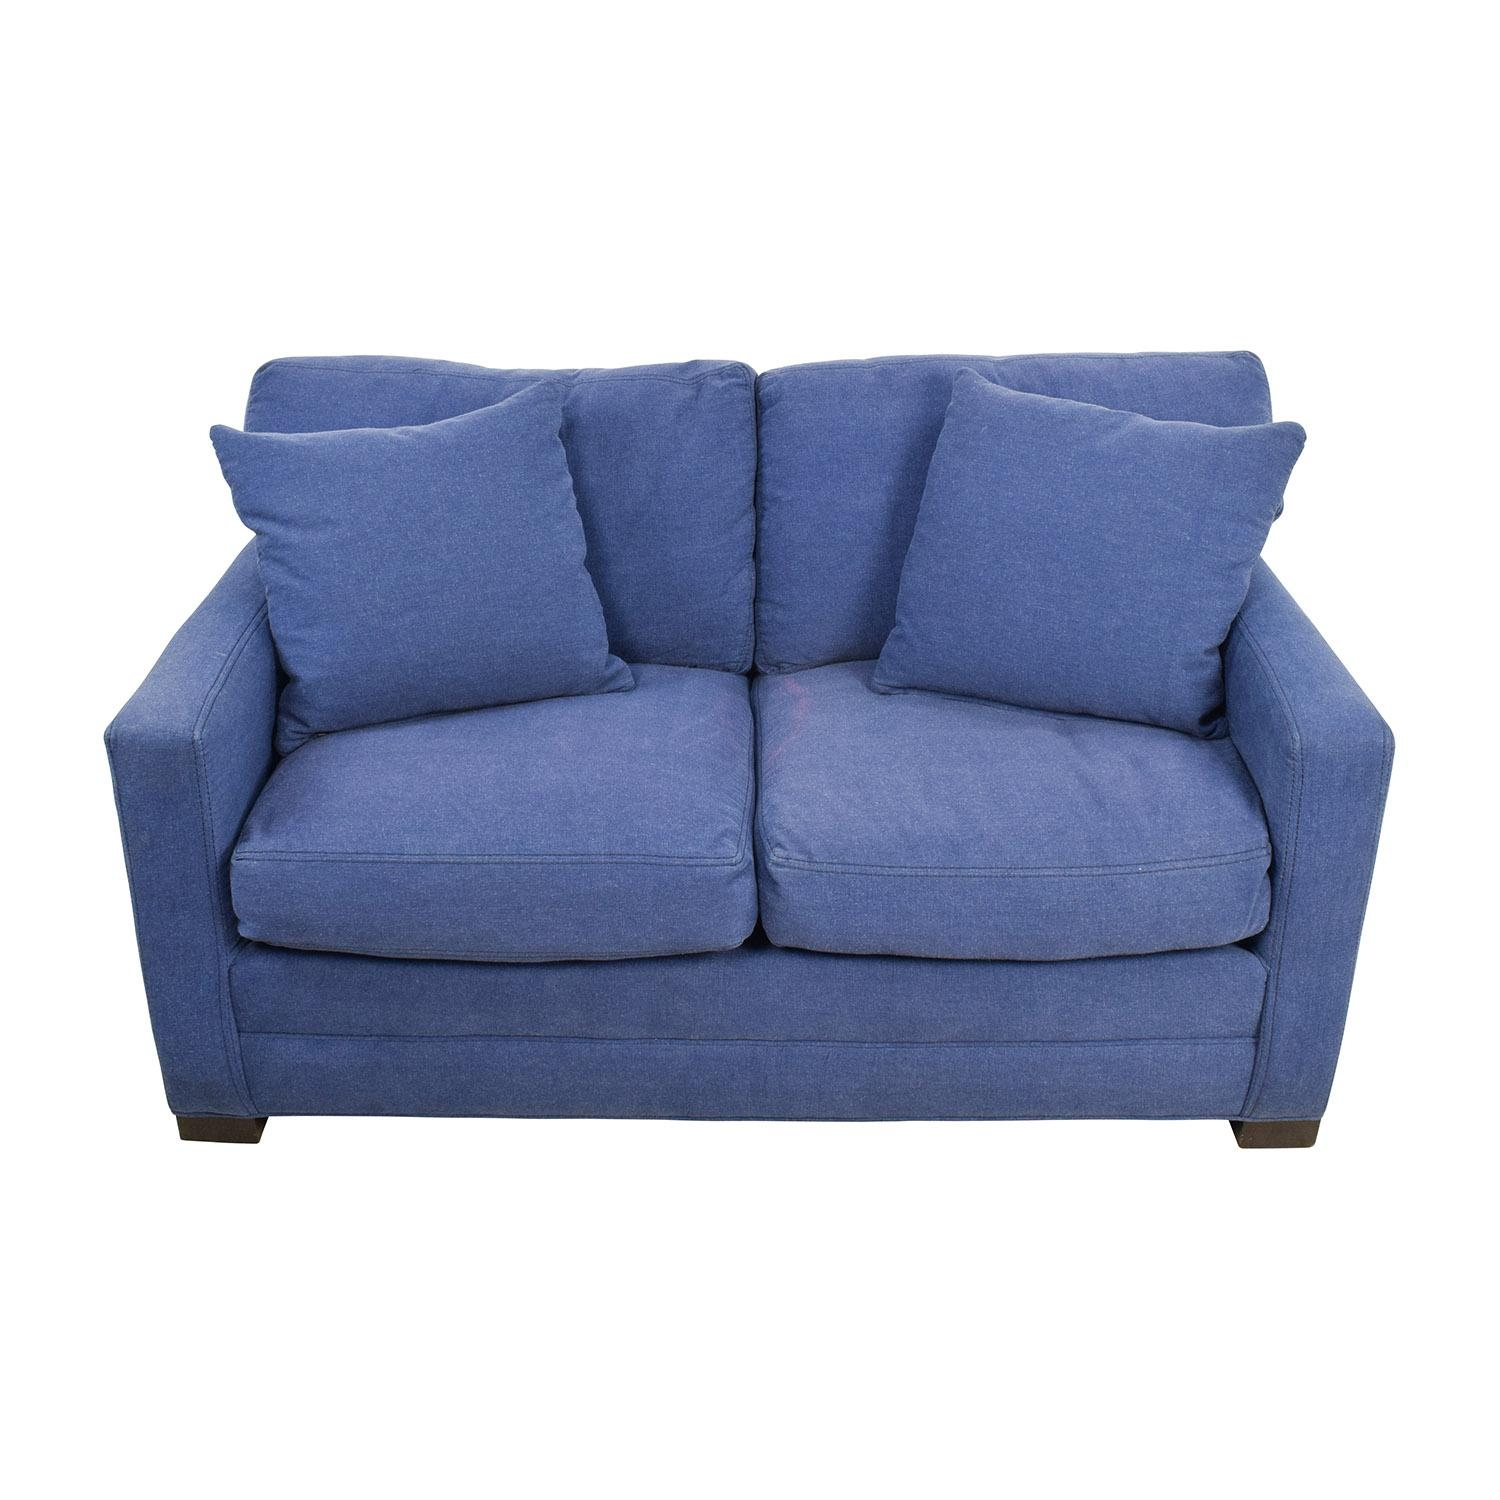 79% Off – Lee Industries Lee Industries Denim Blue Loveseat / Sofas In Denim Loveseats (View 3 of 20)